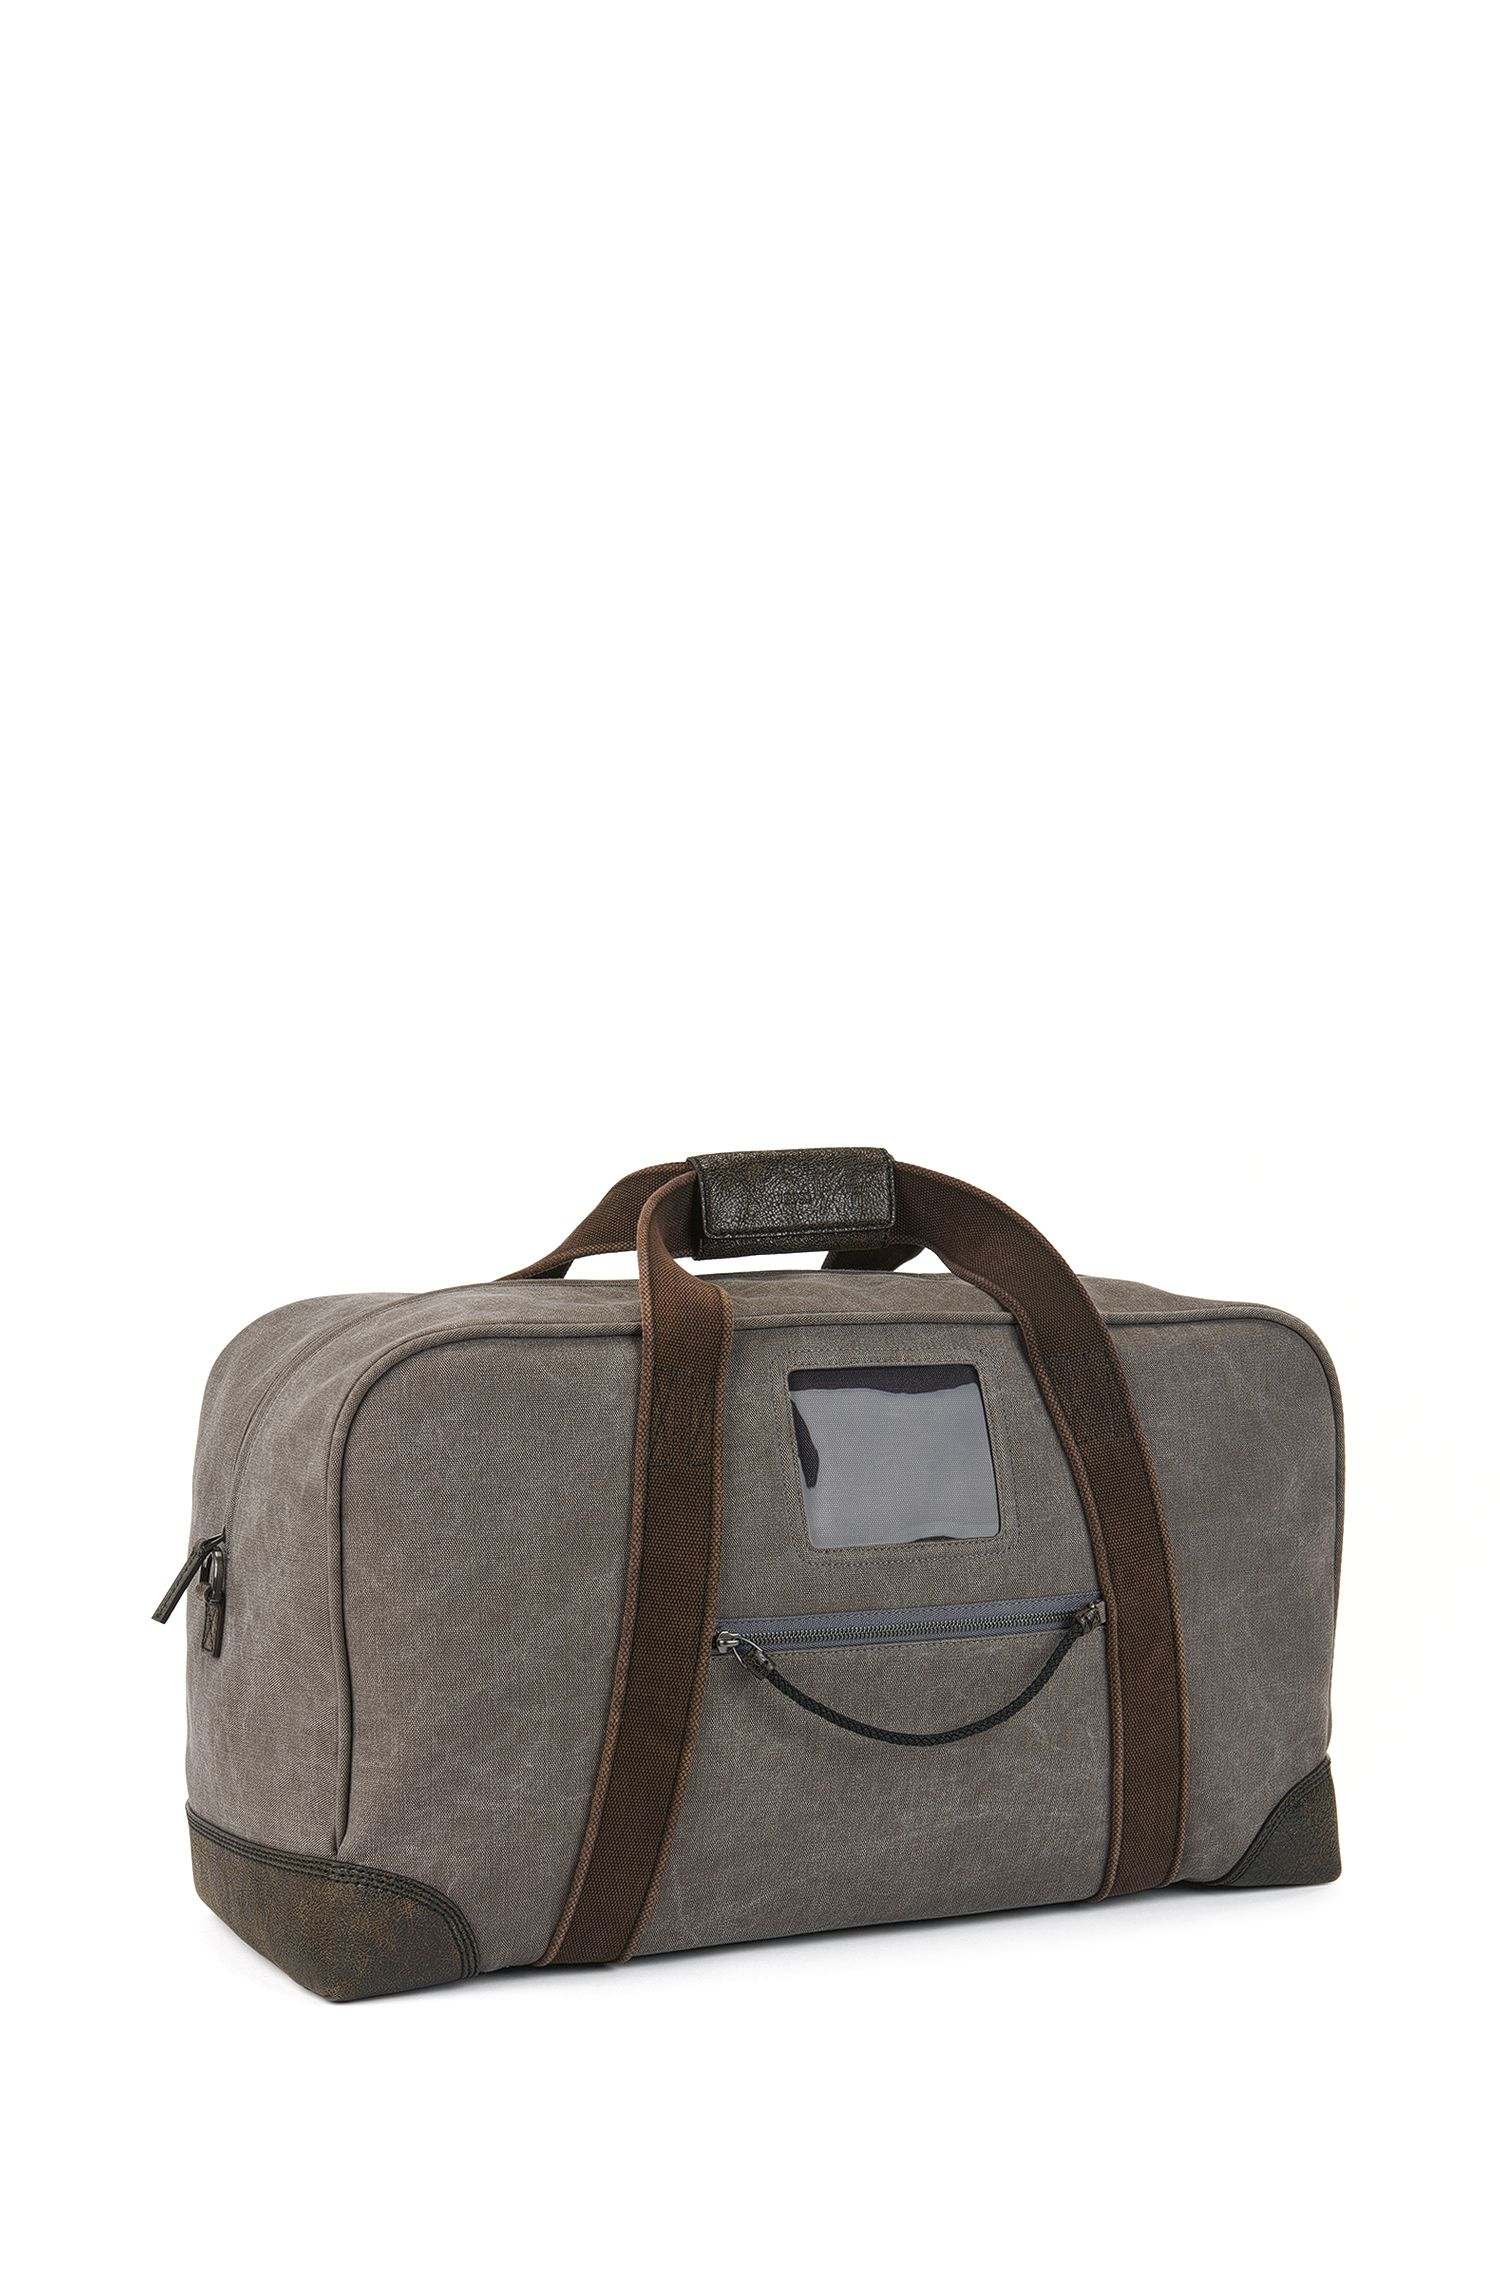 Crossbody Technical Bag | 'Explorer', Charcoal